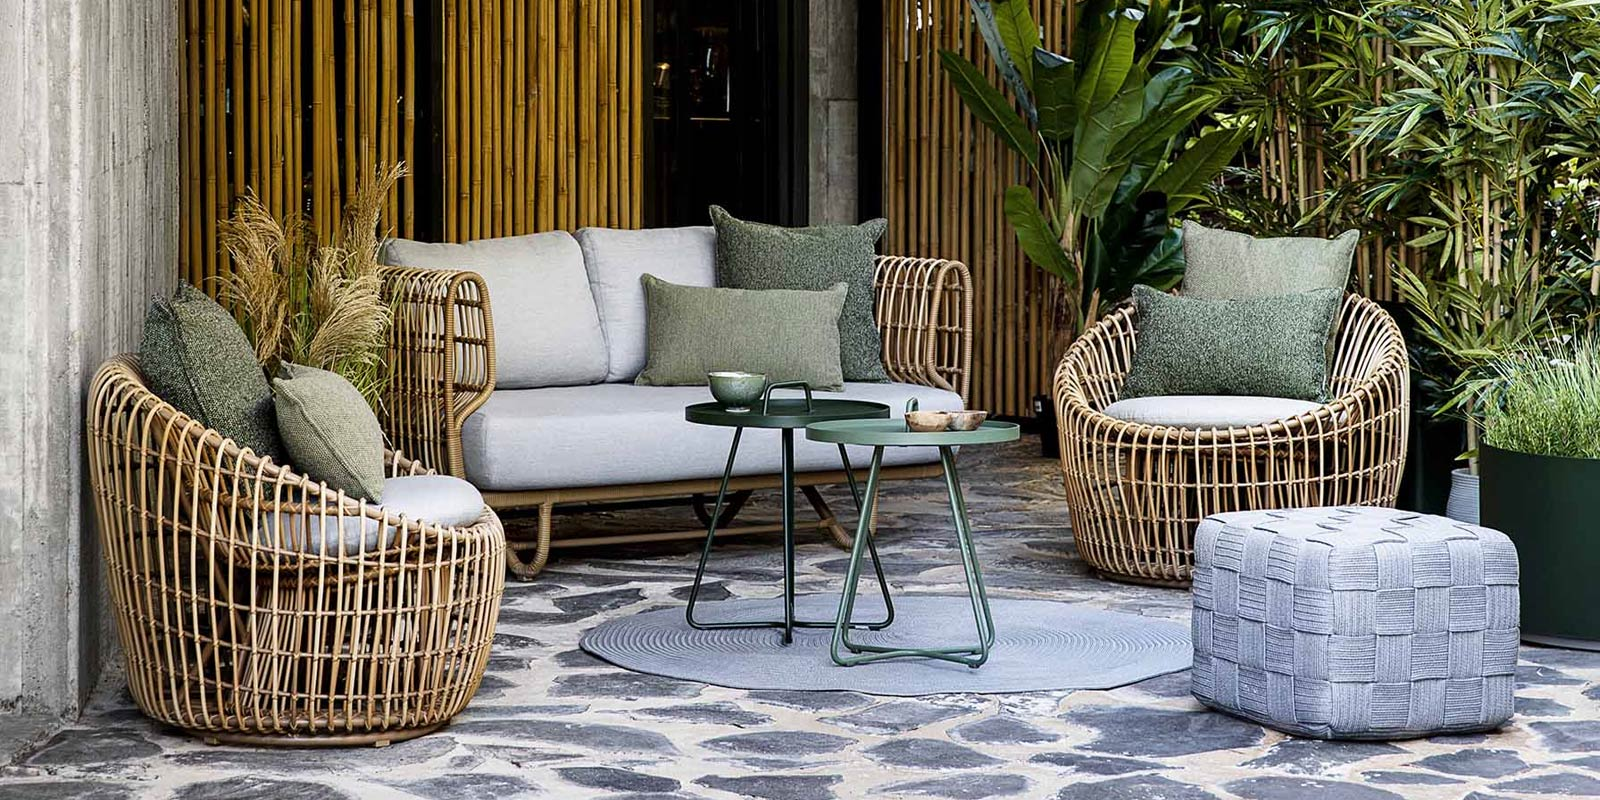 Cane-Line Nest Outdoor Furniture Collection